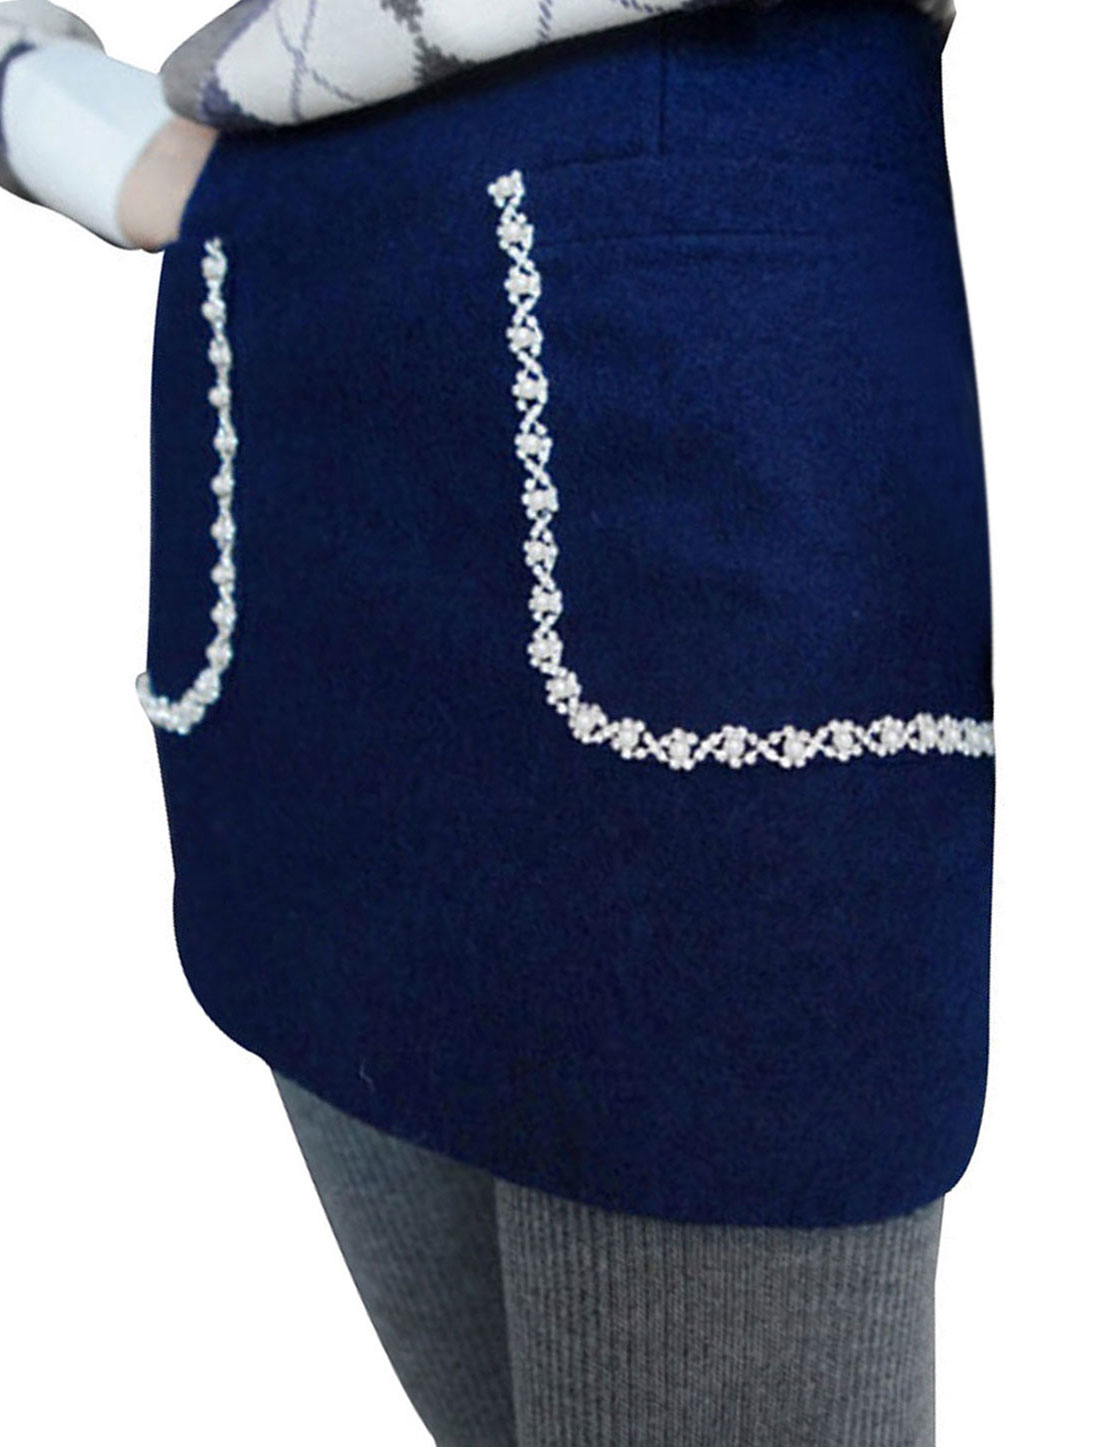 Ladies Blue Natural Waist A-Line Casual Trendy Mini Skirt XS